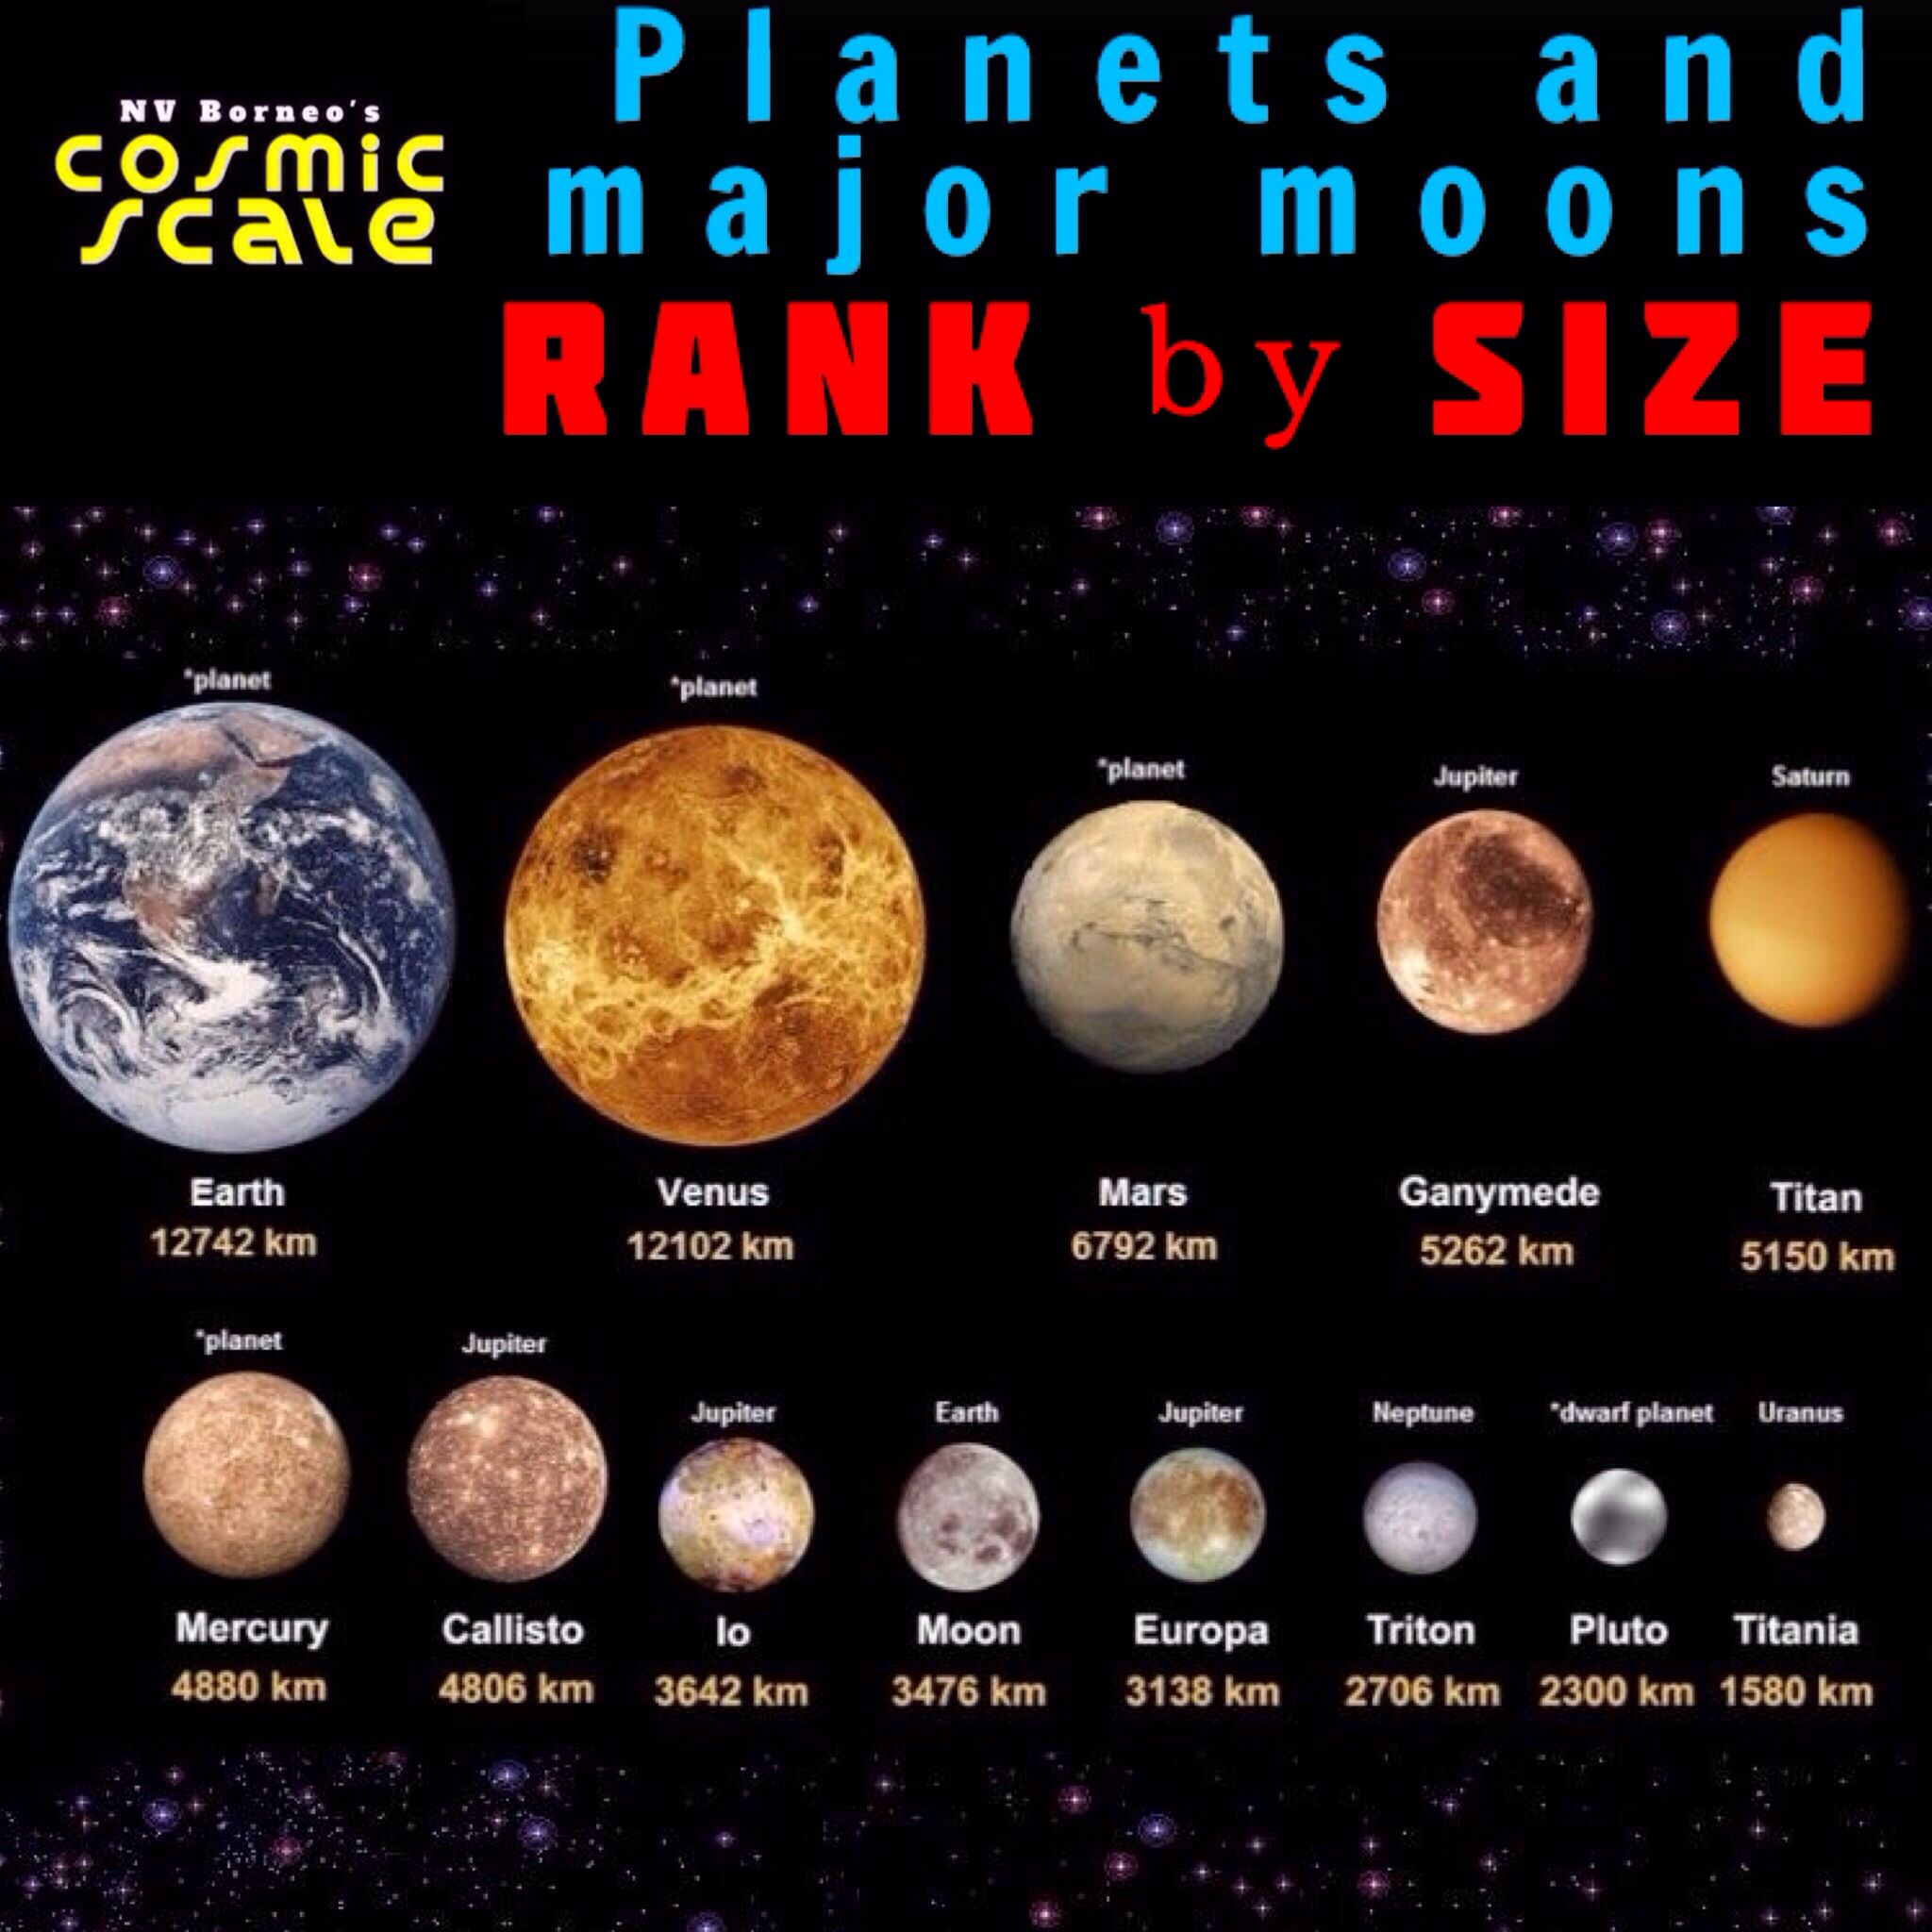 Other rankings: By thickest atmosphere: Venus, Titan ...